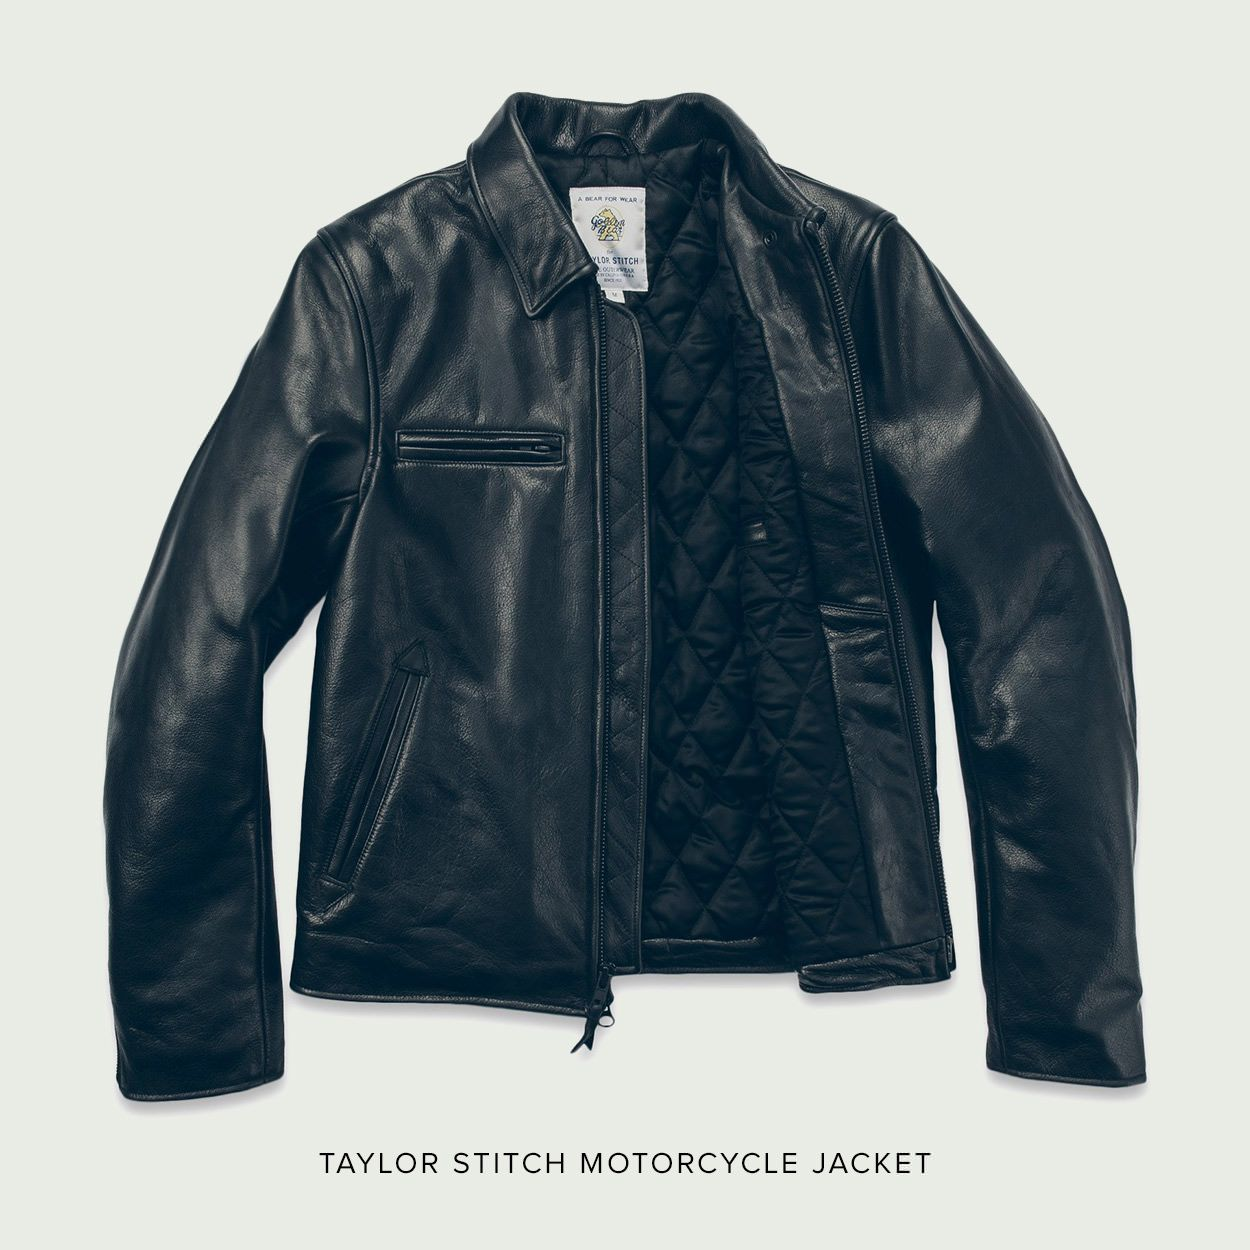 New Motorcycle Gear—Bell, ICON 1000 and REV'IT! Jackets